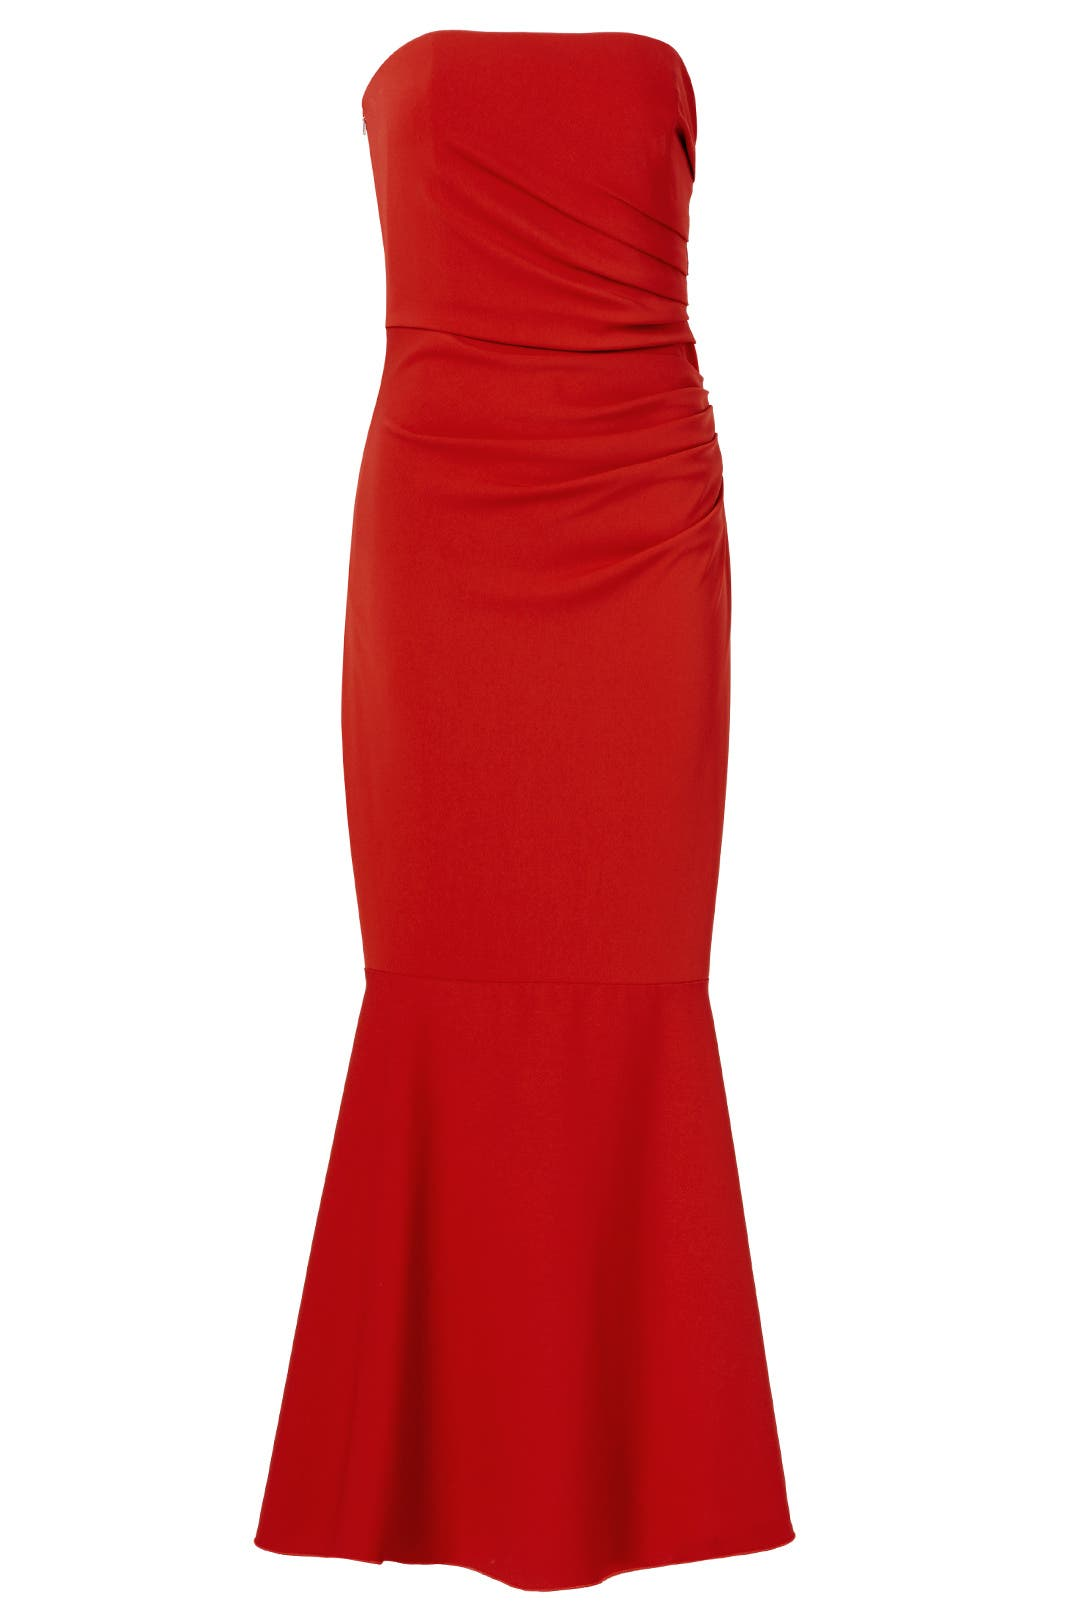 0f41b95f827ea Beauty in a Bottle Gown by Badgley Mischka for  60 -  85 - Page 2 ...